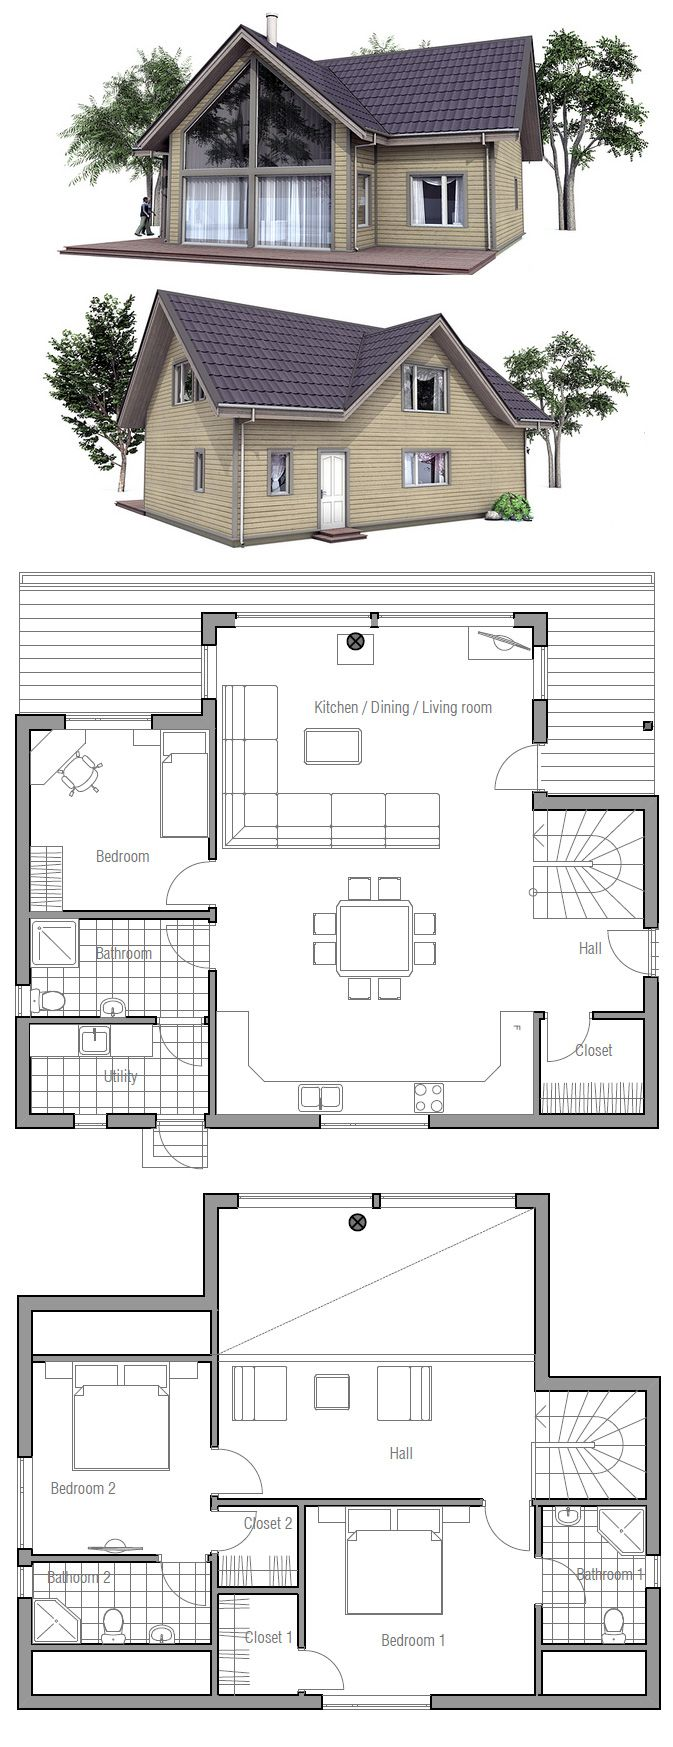 Nice plan, except the utility room connecting to the bathroom is weird. And there isn't any reason for there to be a shower there it would work better as a half bath unconnected from the utility room.